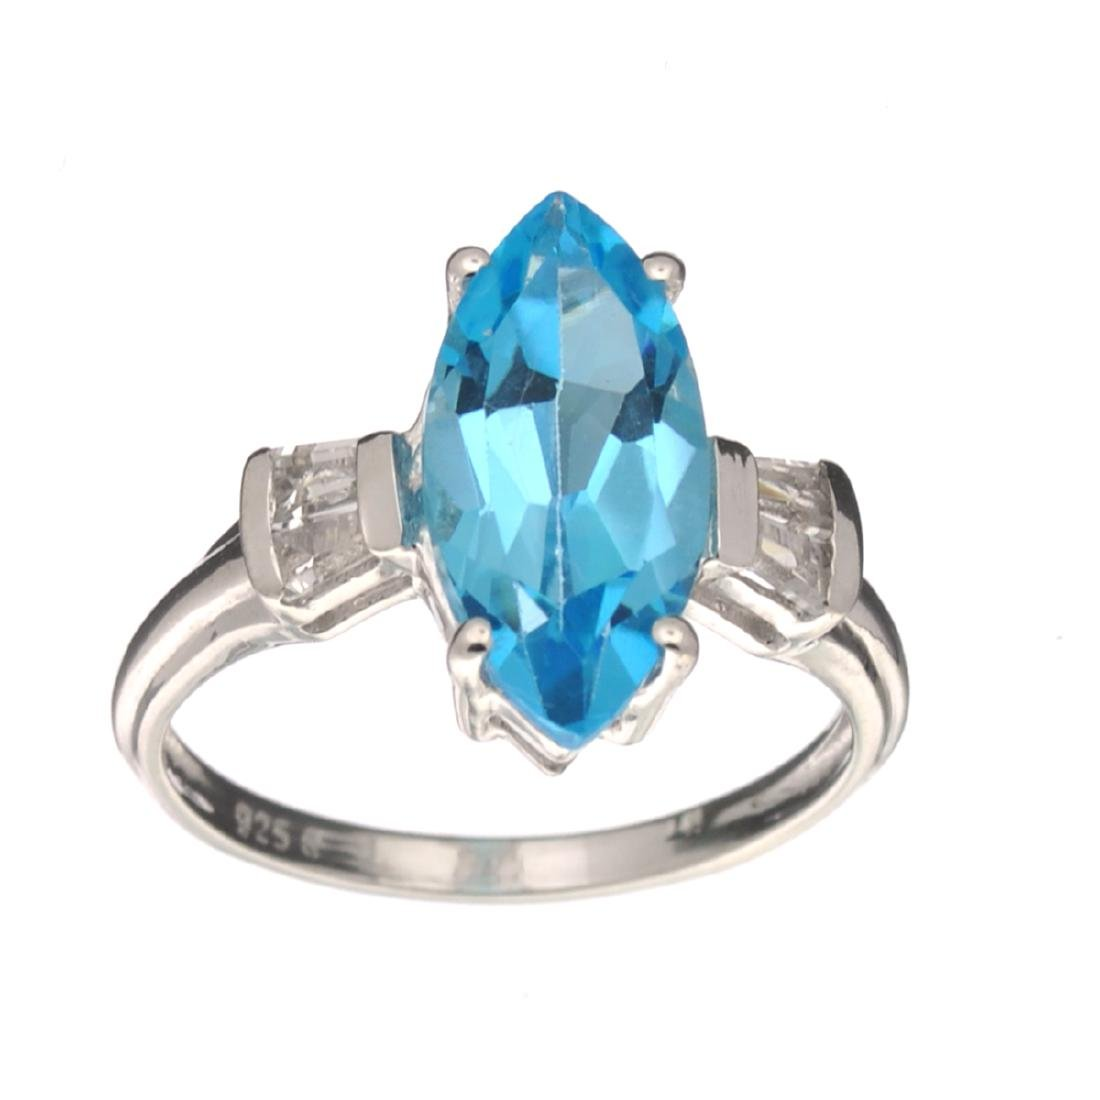 APP: 0.5k Fine Jewelry 3.20CT Marquise Cut Blue And